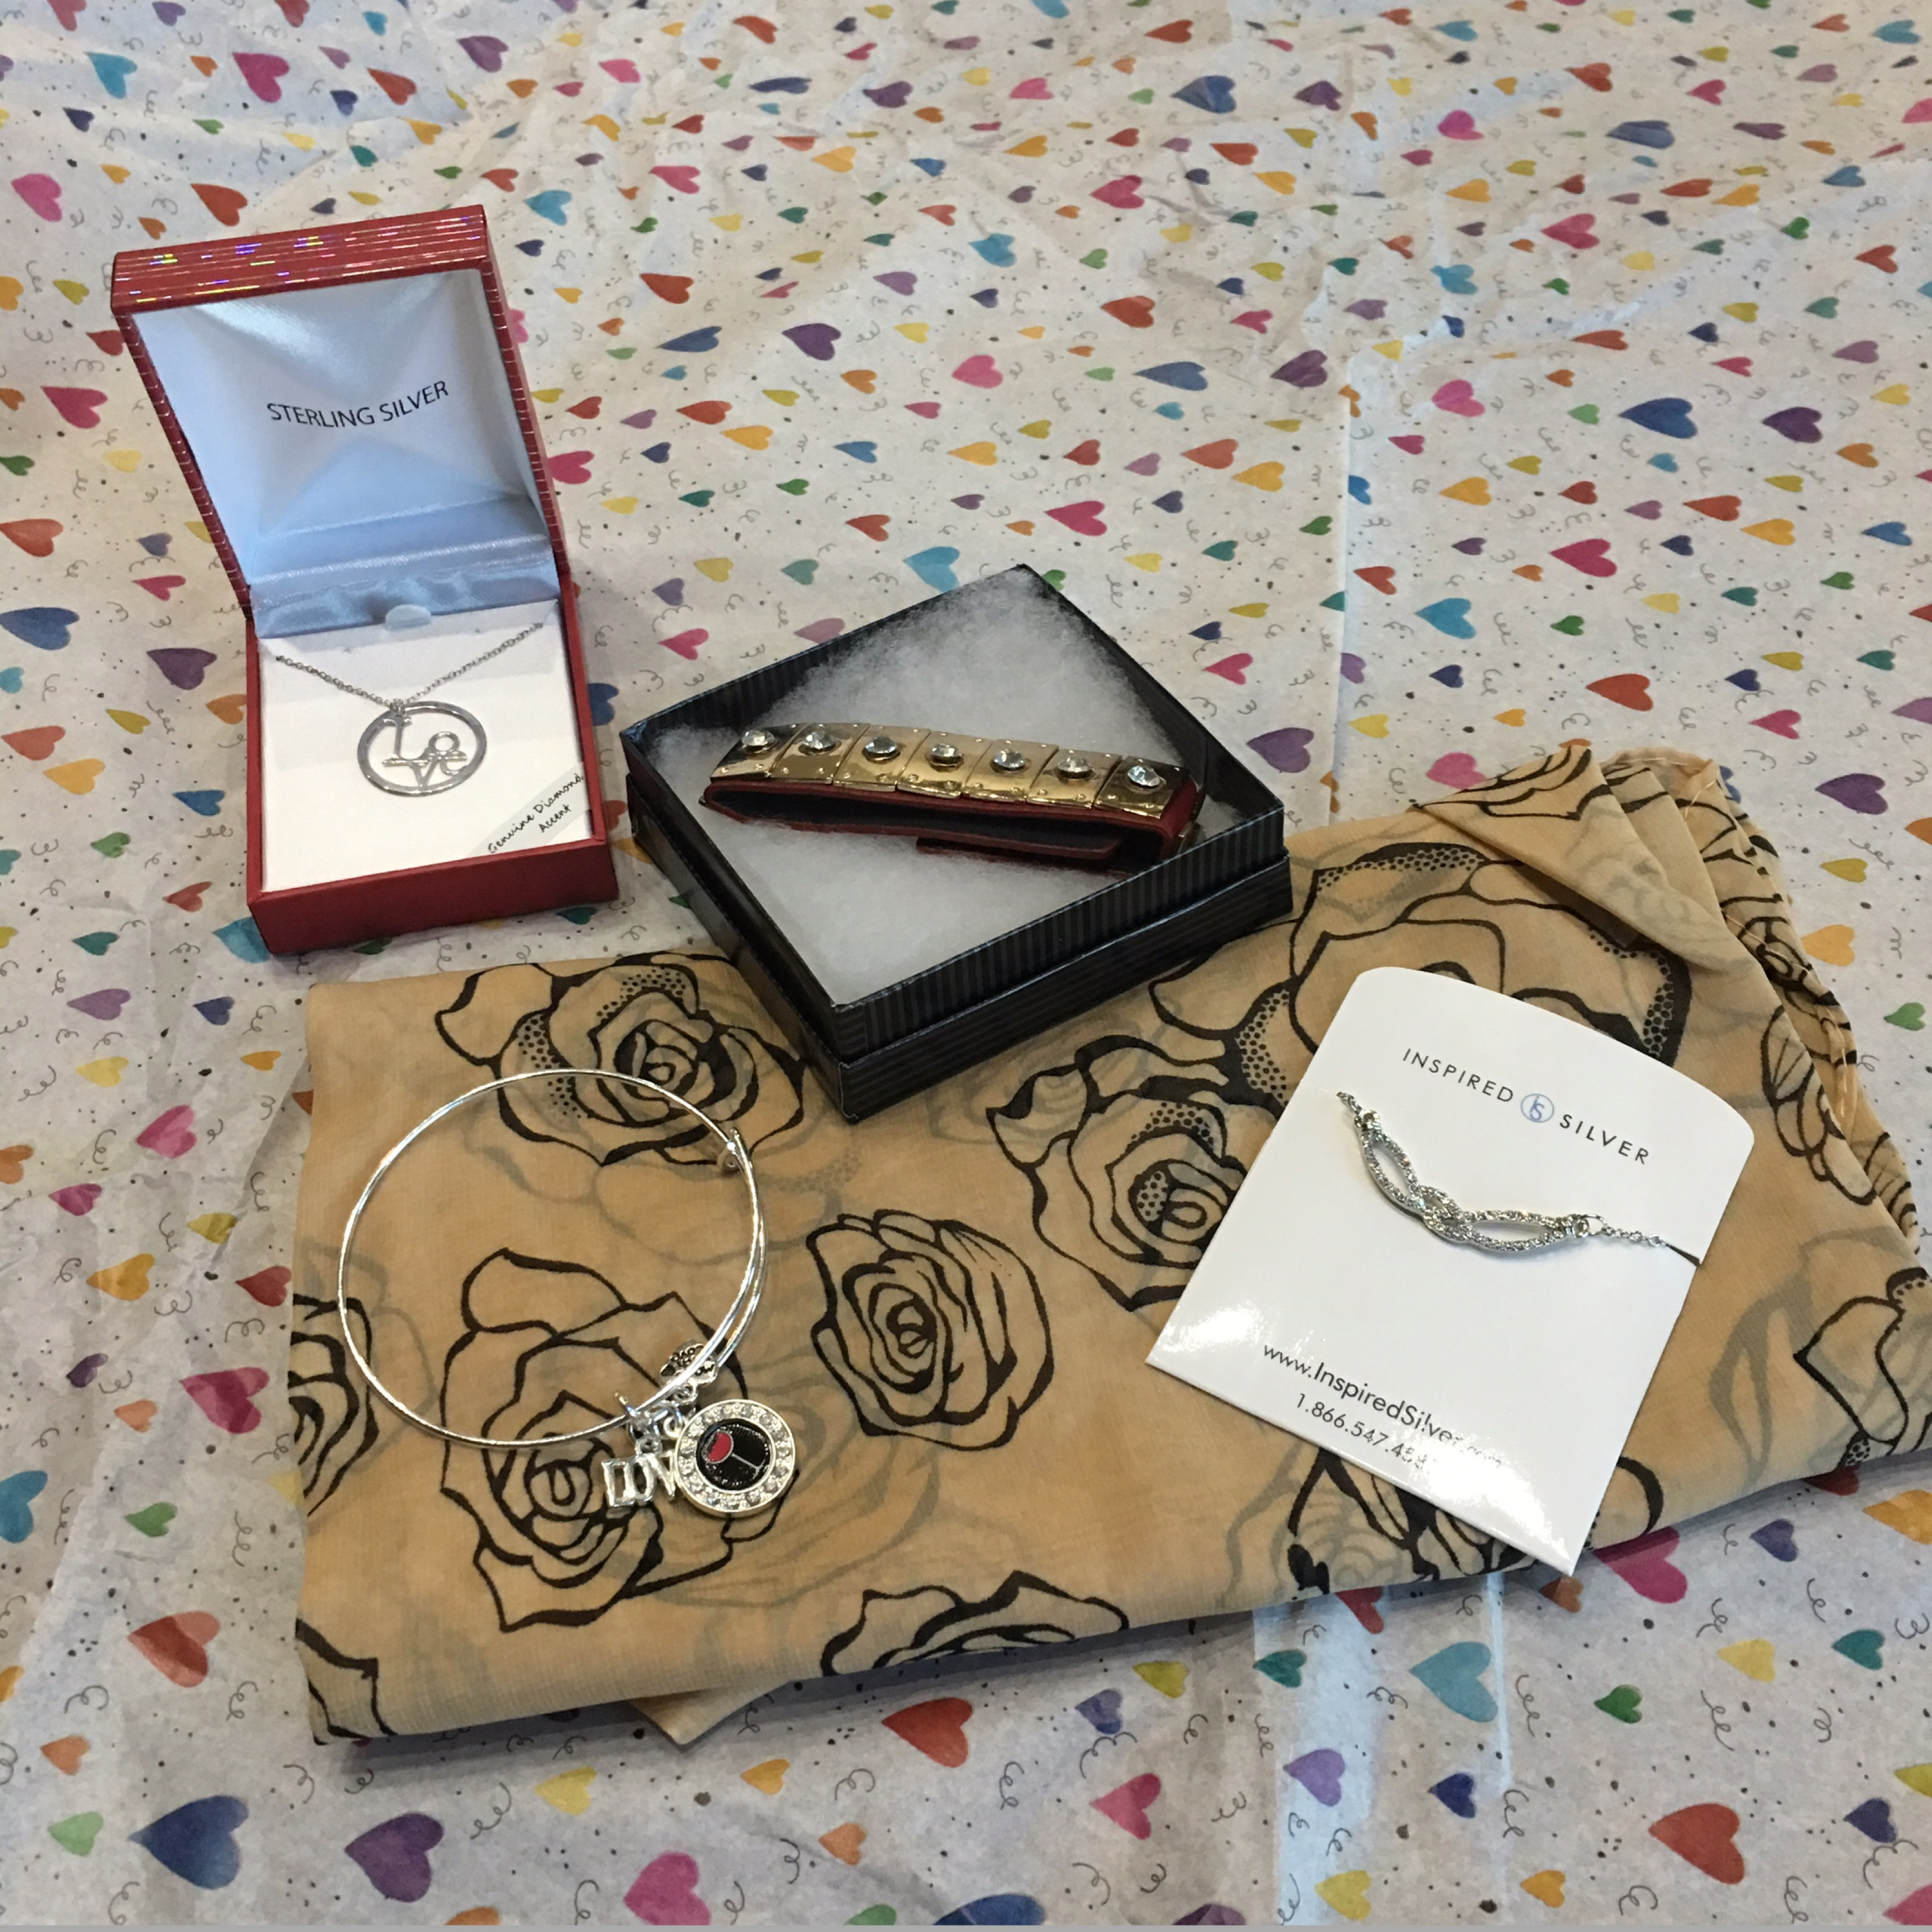 Inspired Silver Jewelry Box